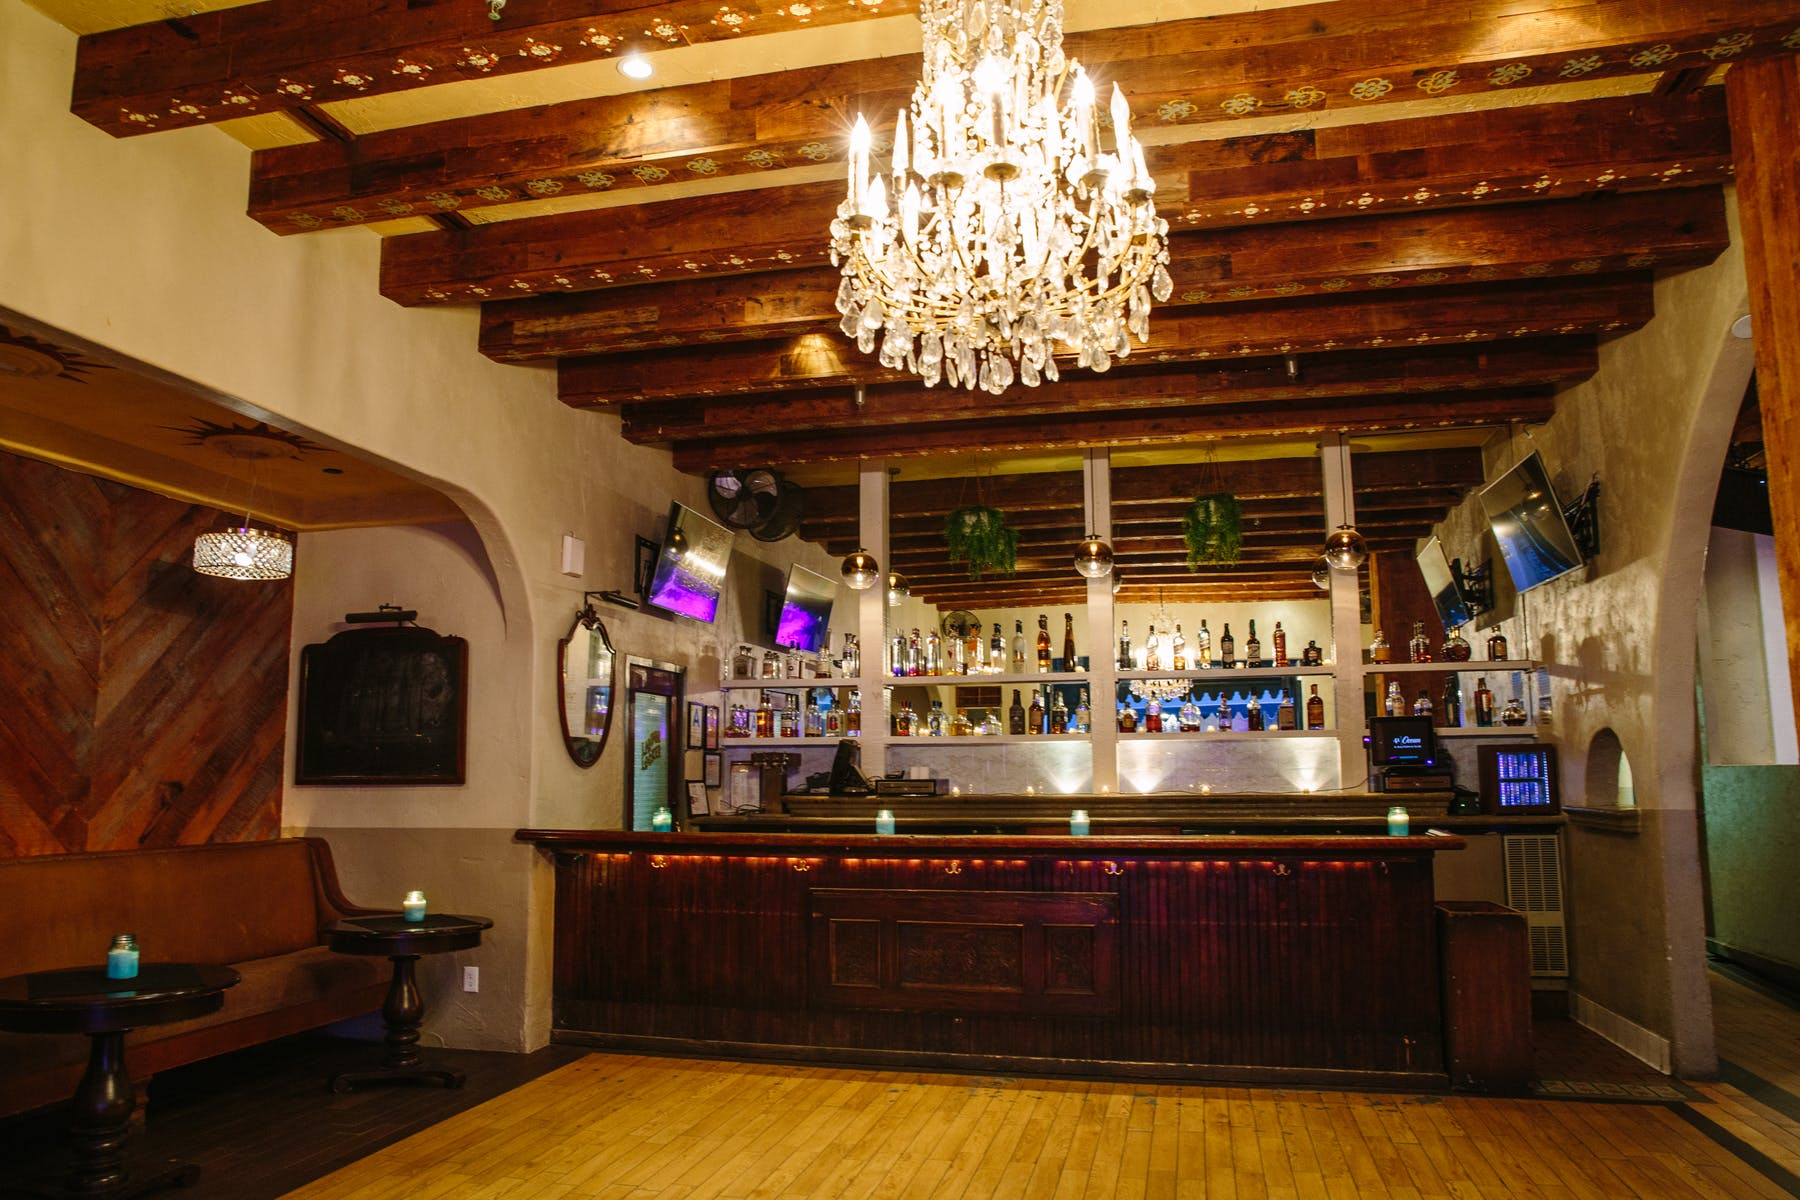 a room filled with furniture, a bar, chairs, bottles, and a chandelier